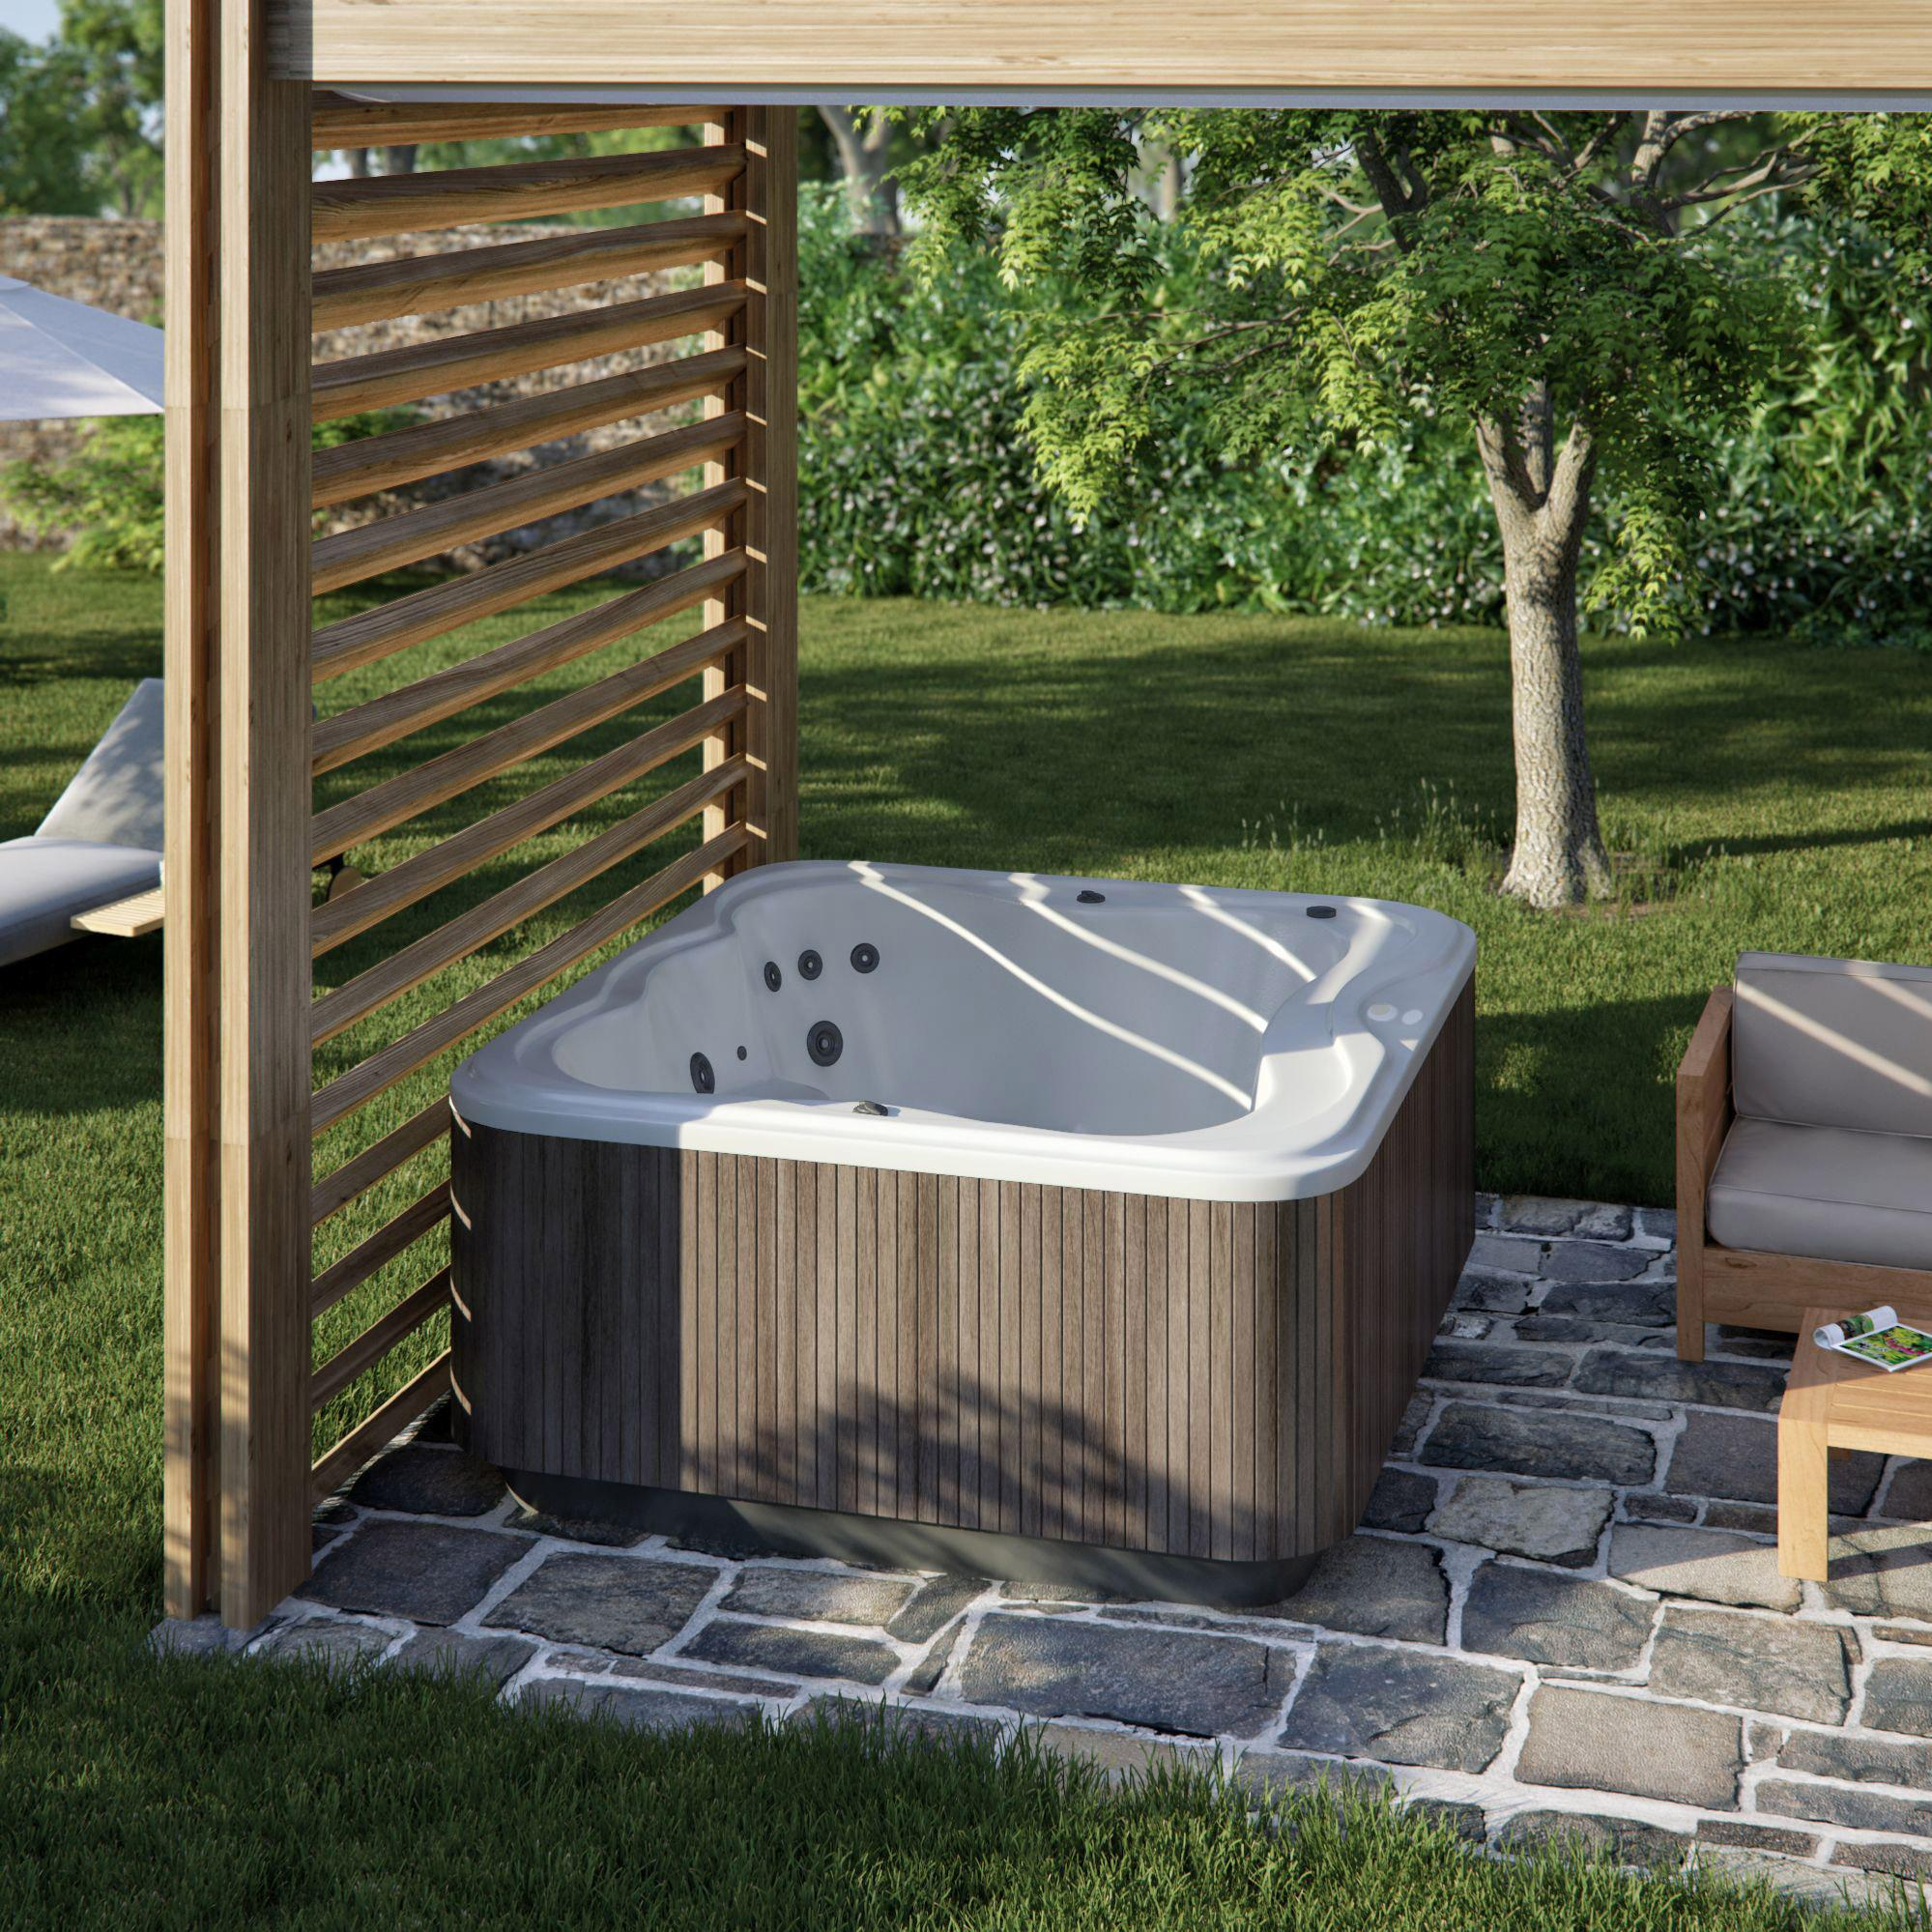 Spa Gris 5 Places, PROJECTA BY JACUZZI Madura ...